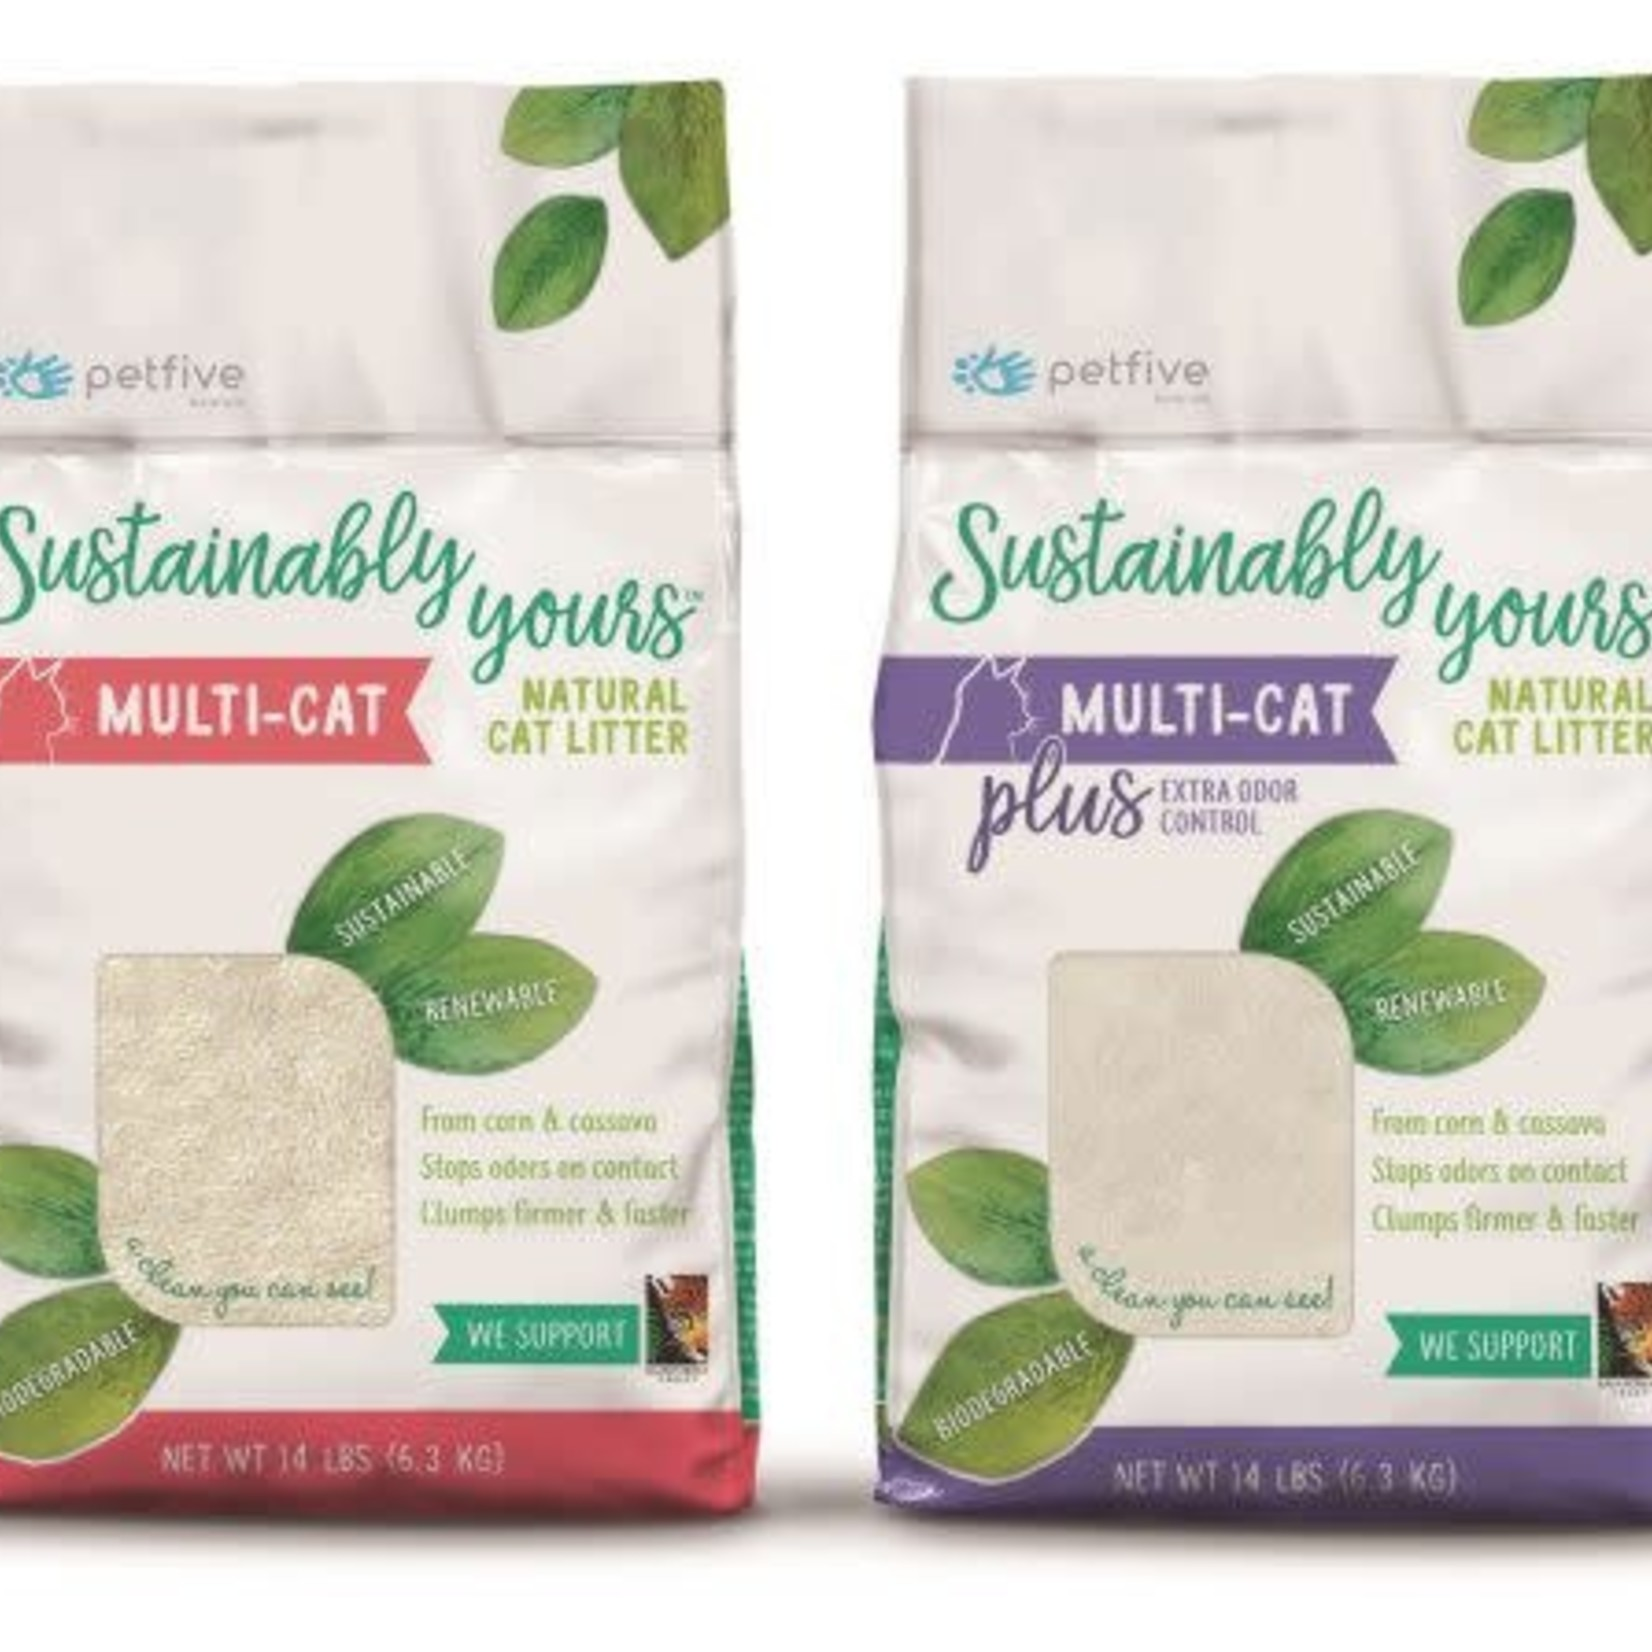 Sustainably Yours Sustainably Yours Litter Multi Cat Plus 26#